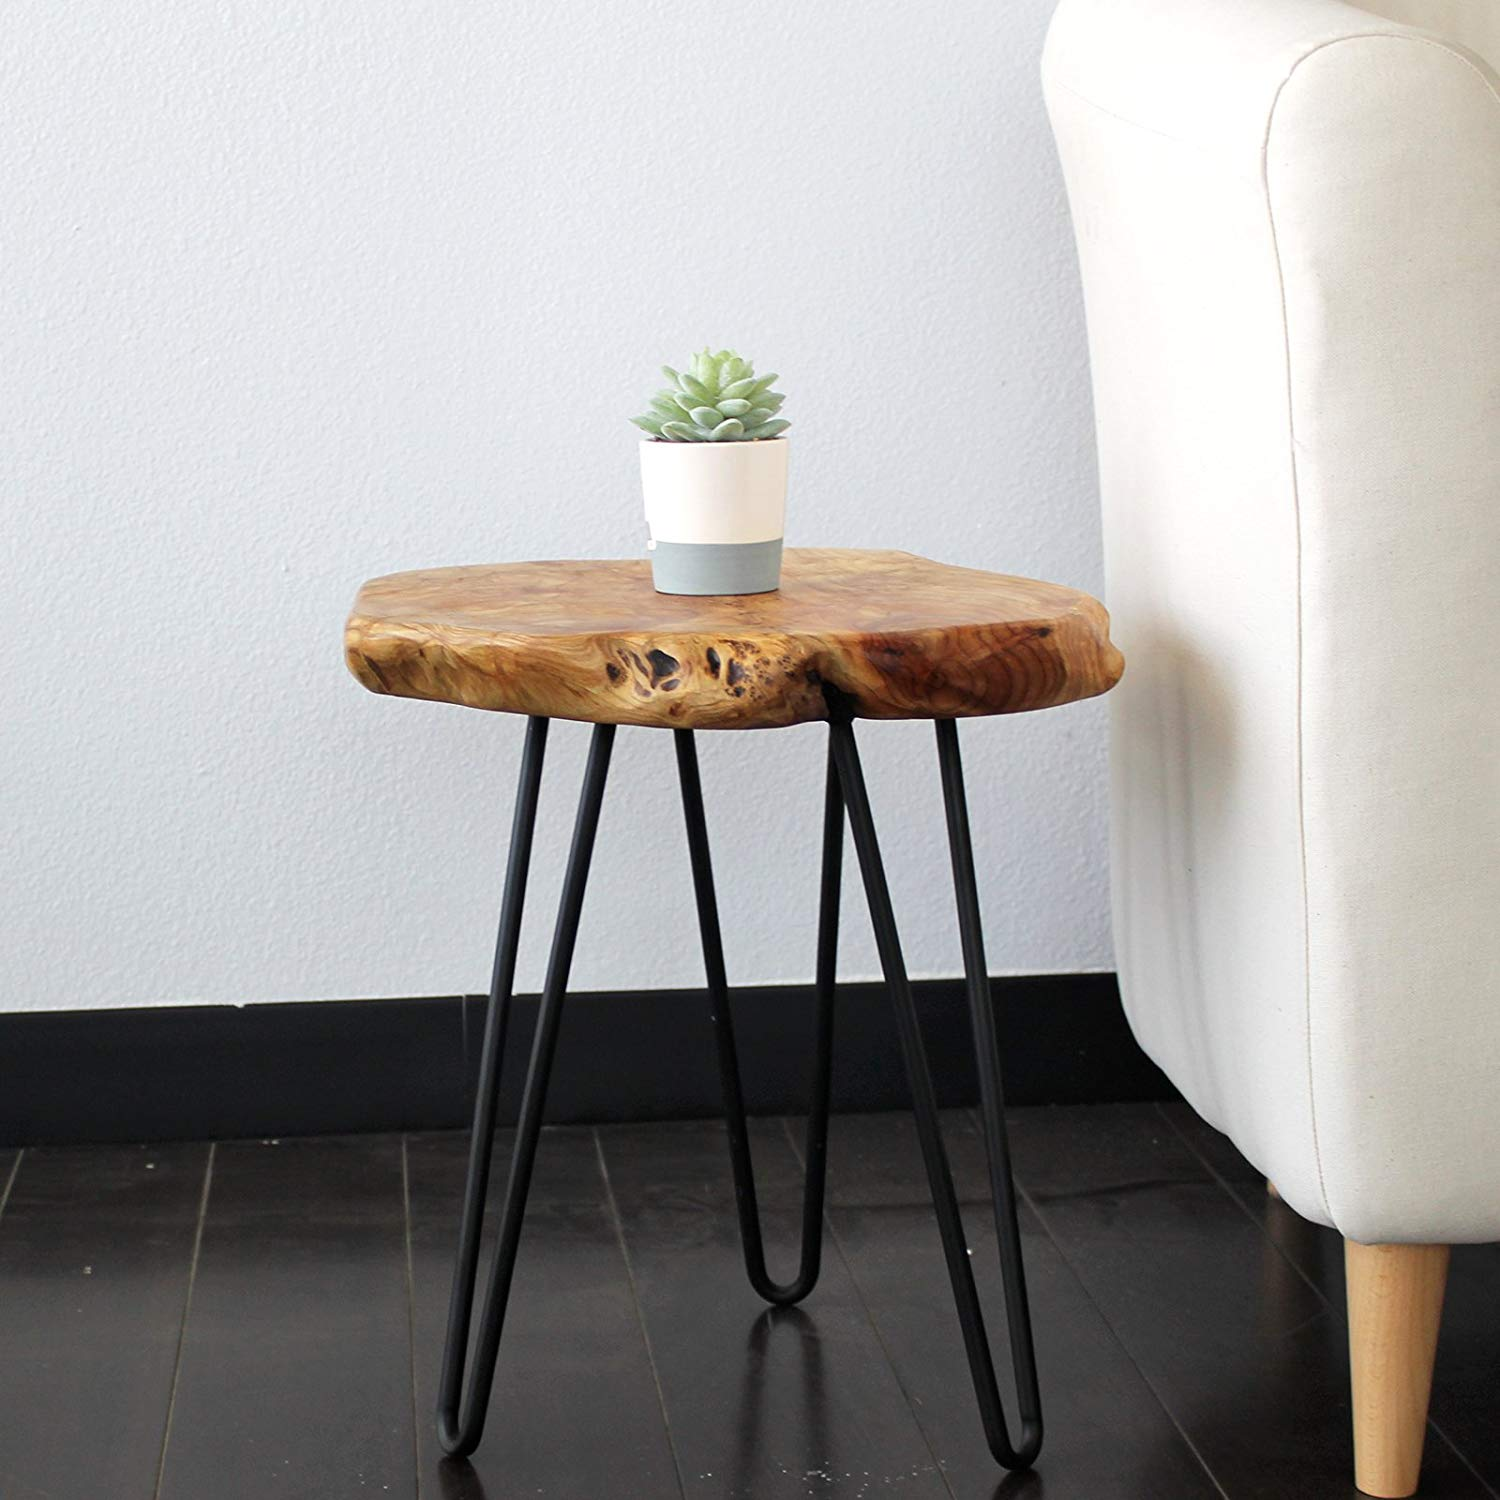 welland tree stump side table live edge stool natural wood accent tall cream colored tables touch lamps white patio pottery barn small battery operated quilted placemats wooden